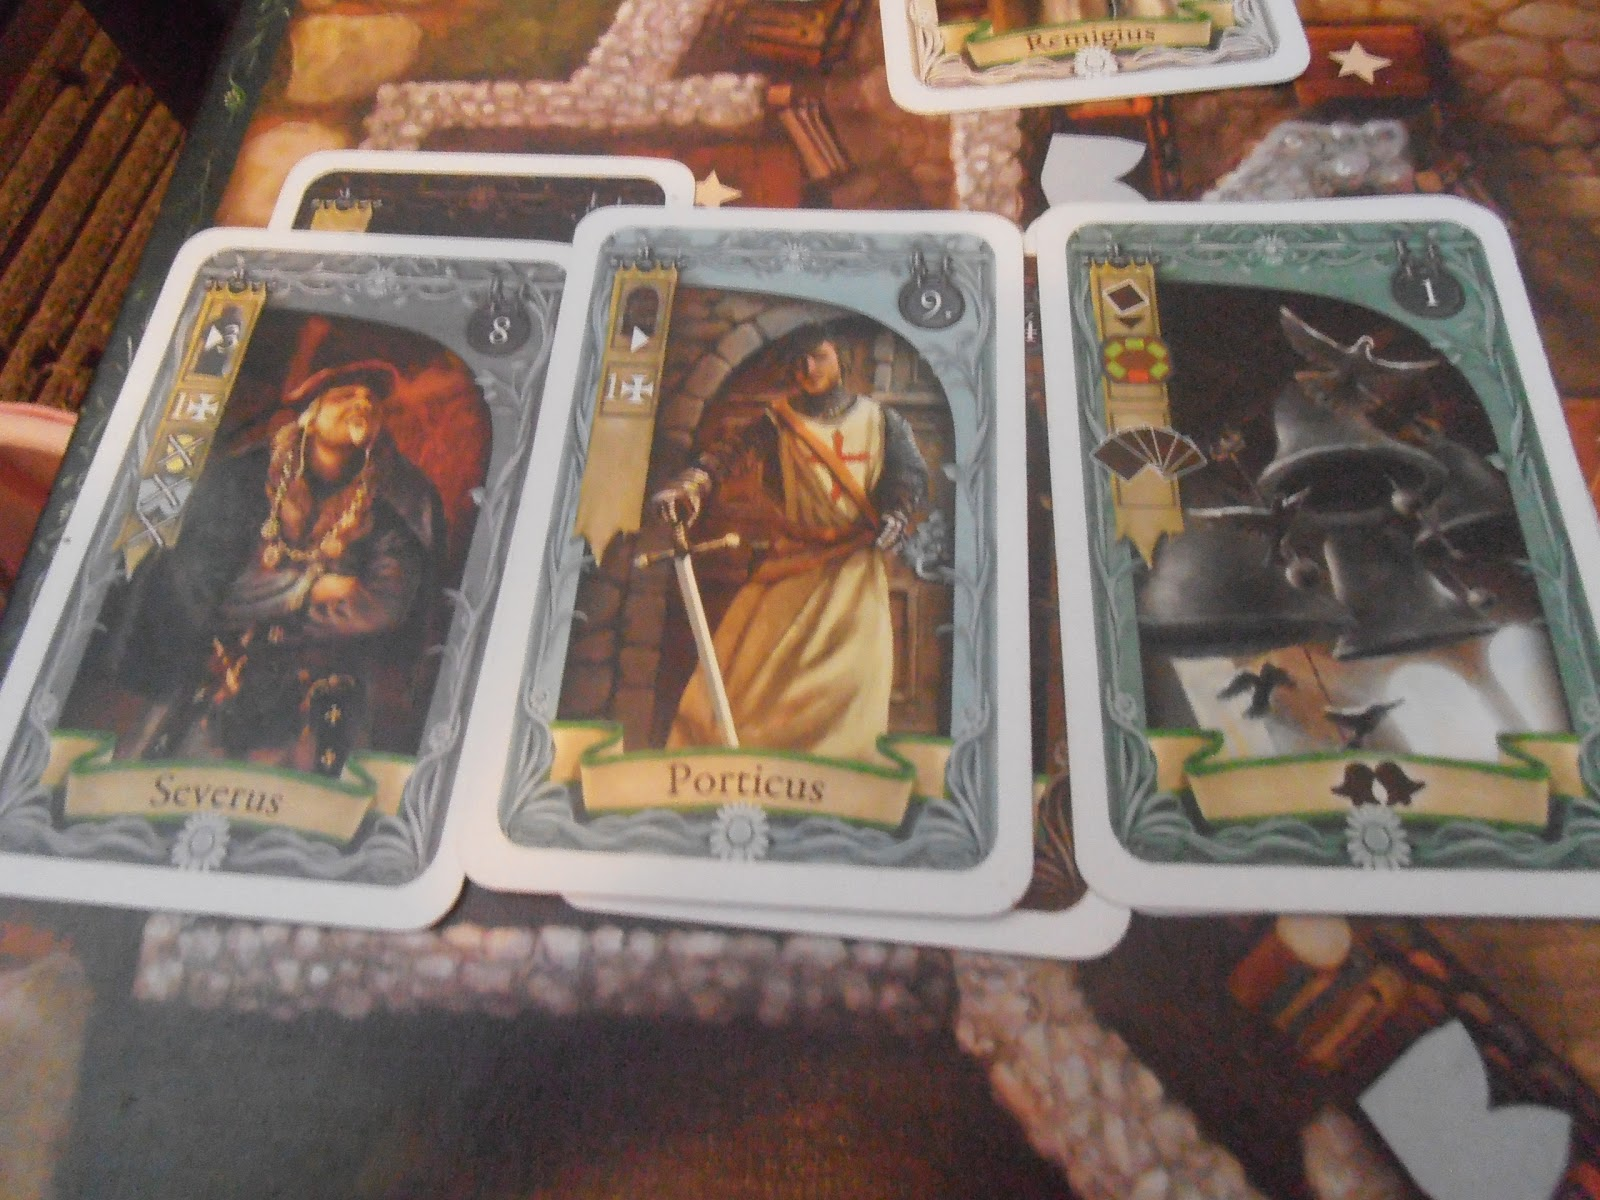 Severus, Porticus and the Bells cards. Templar: Queen Games